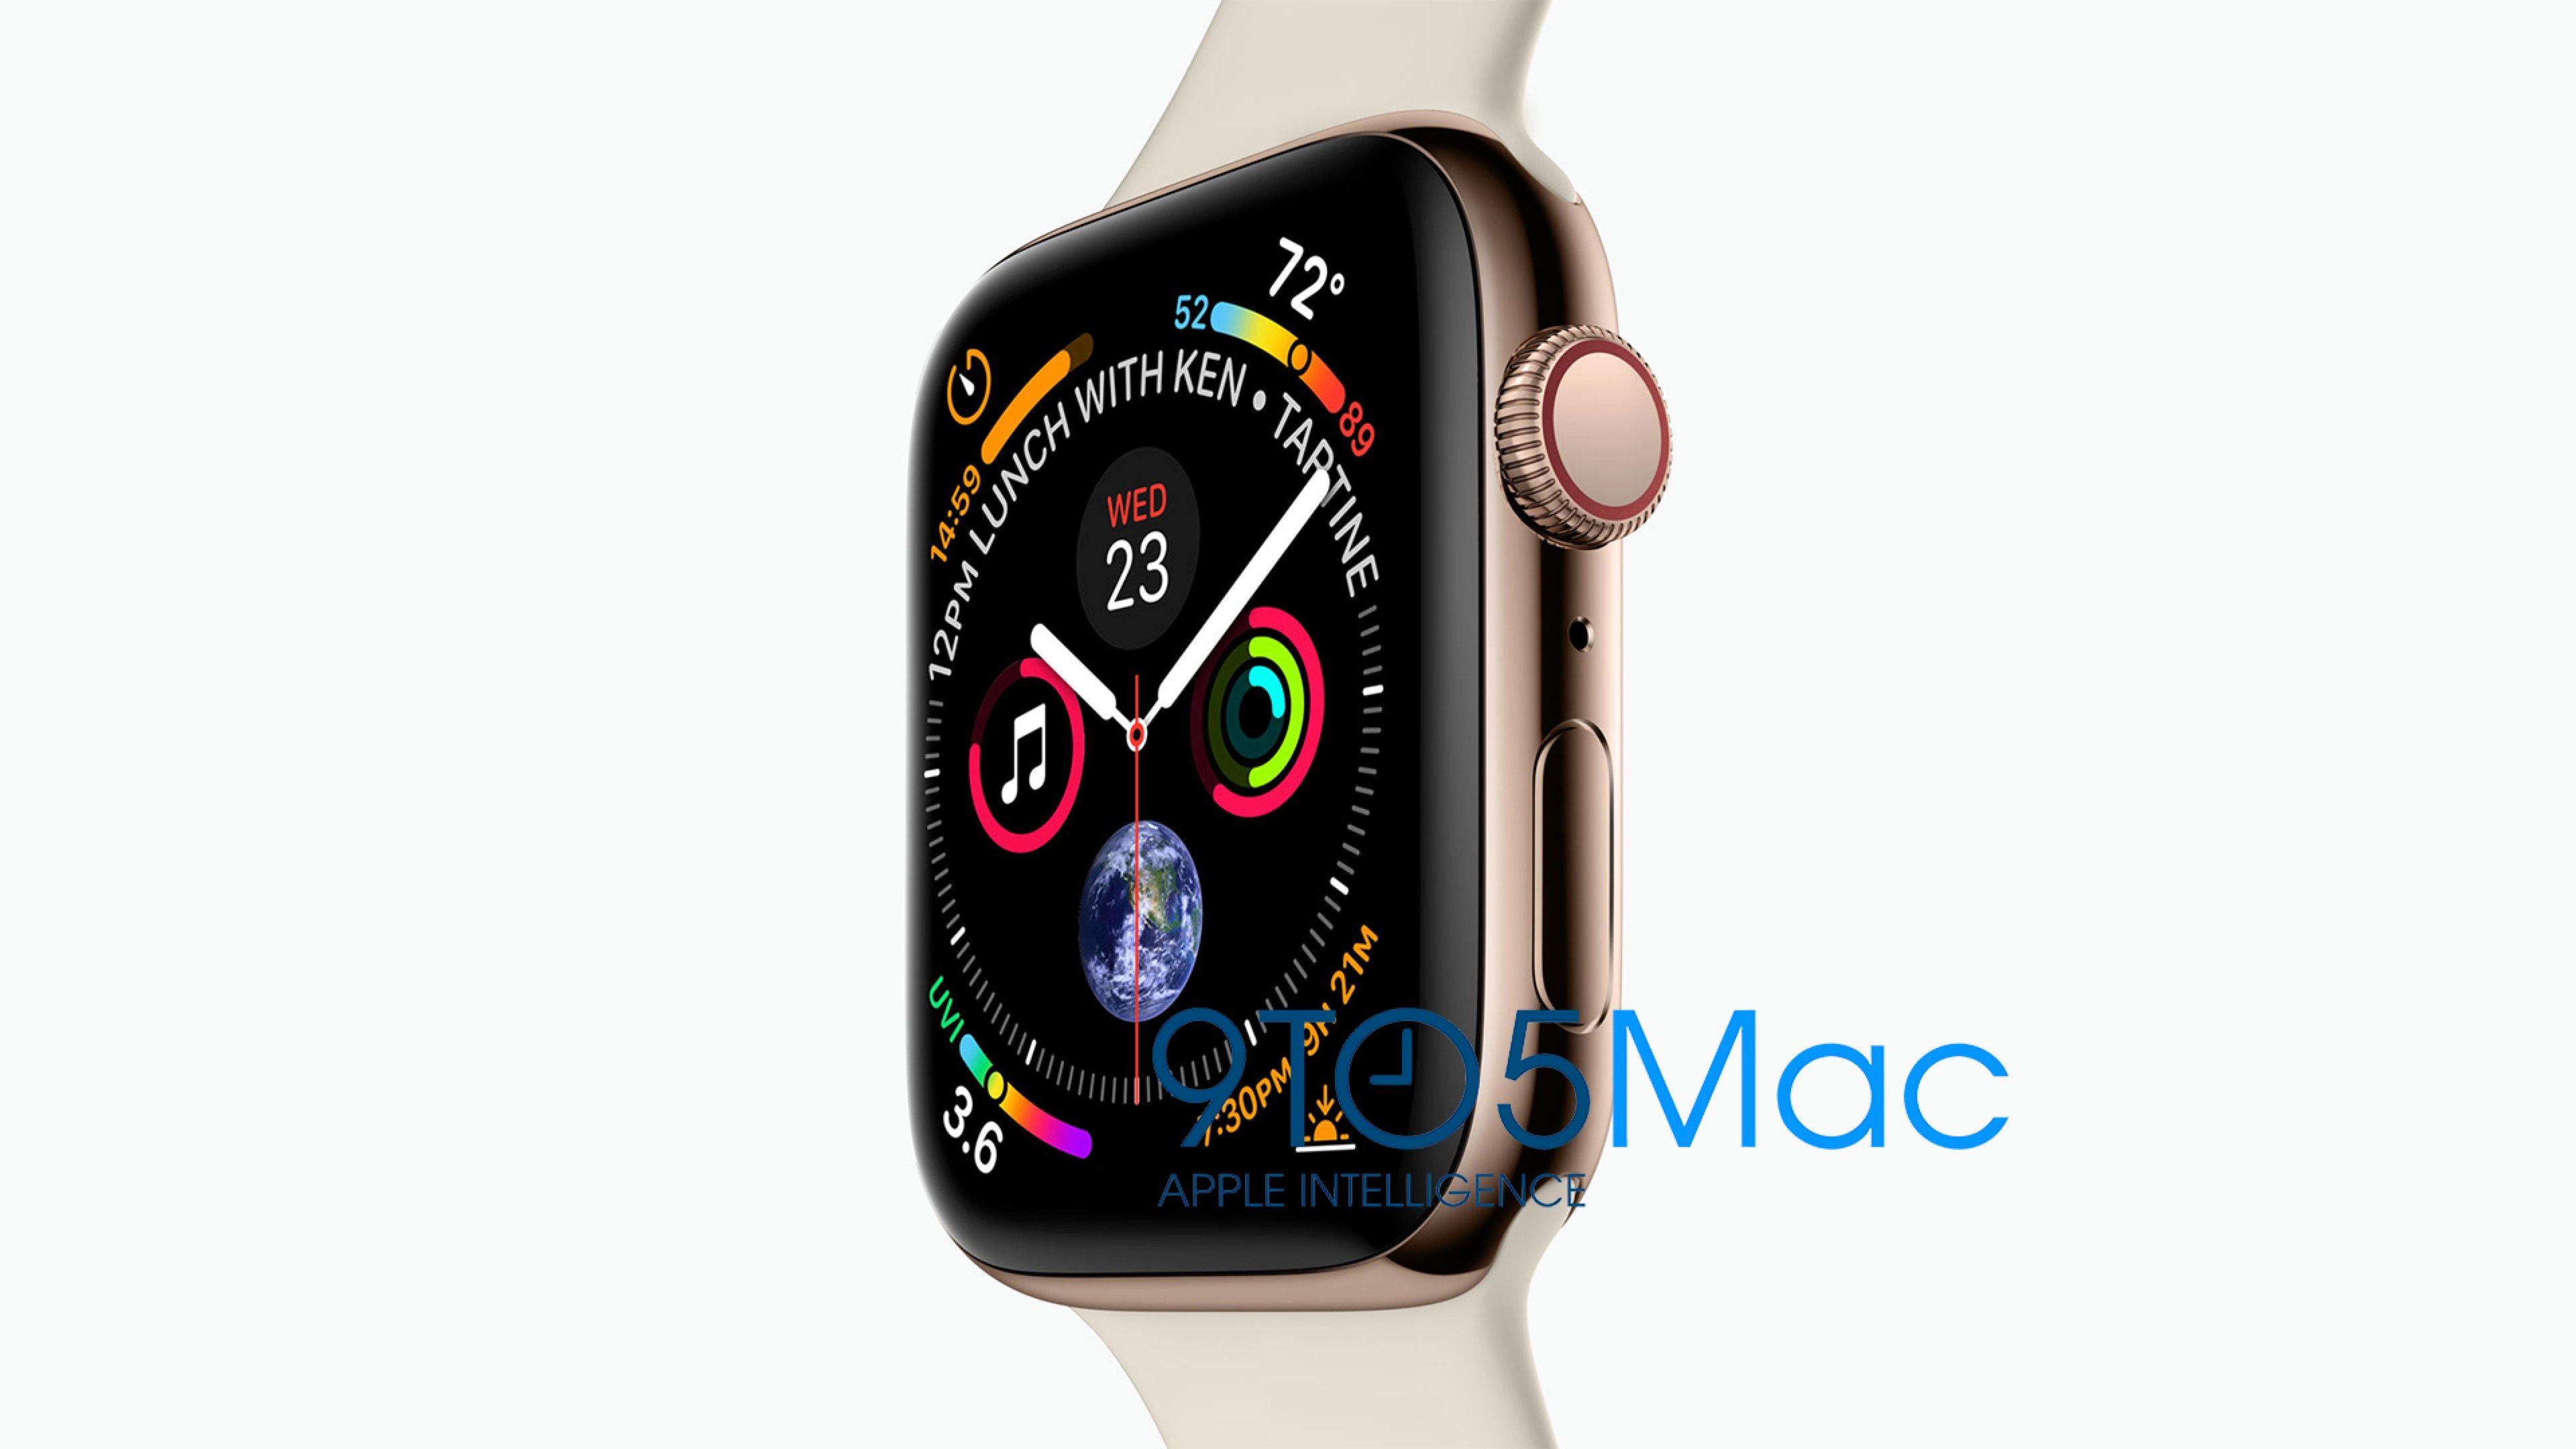 Apple Watch Series 4 von Apple vorgestellt, Leak, Bild, watchOS 5, 9to5mac, Hack4Life, Fabian Geissler, Apple Watch 4, Apple Watch series 4